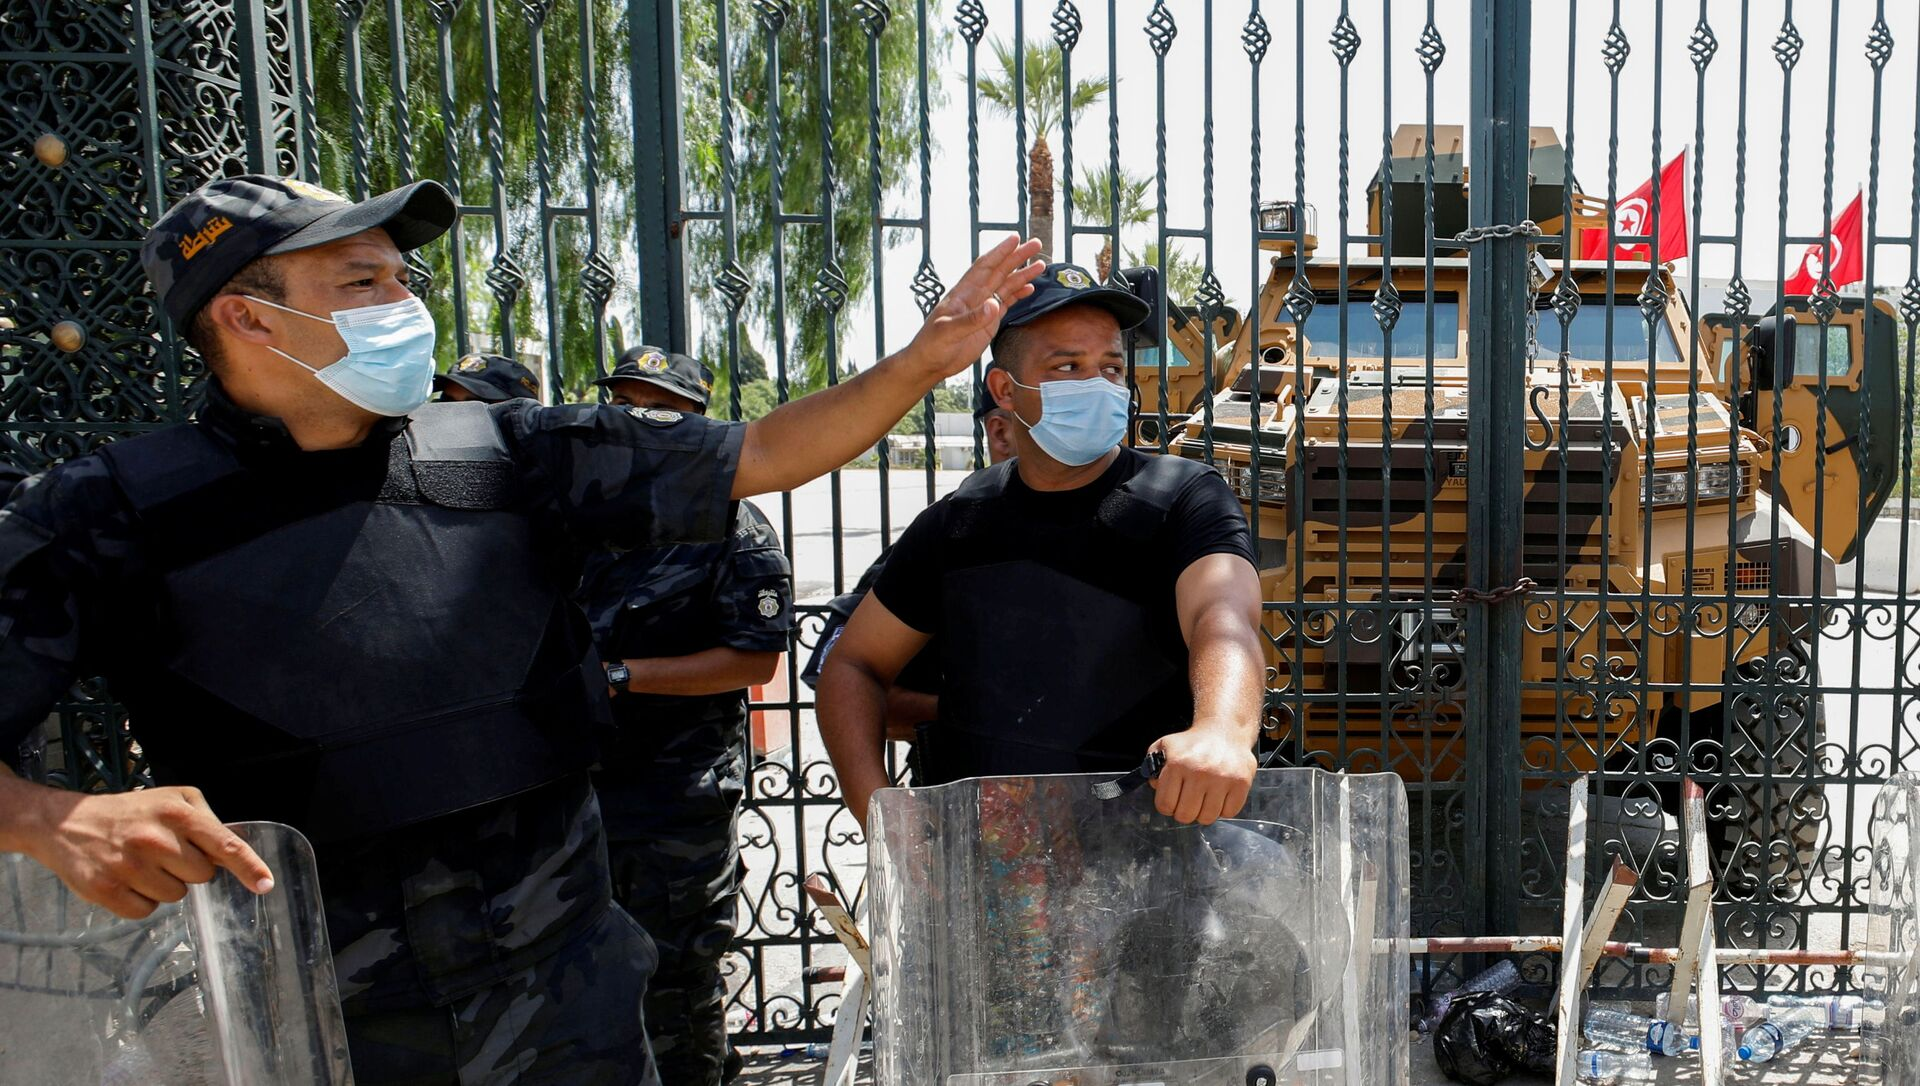 Police officers keep guard as supporters of Tunisia's biggest political party, the moderate Islamist Ennahda, gather outside the parliament building in Tunis, Tunisia July 26, 2021. - Sputnik International, 1920, 26.07.2021